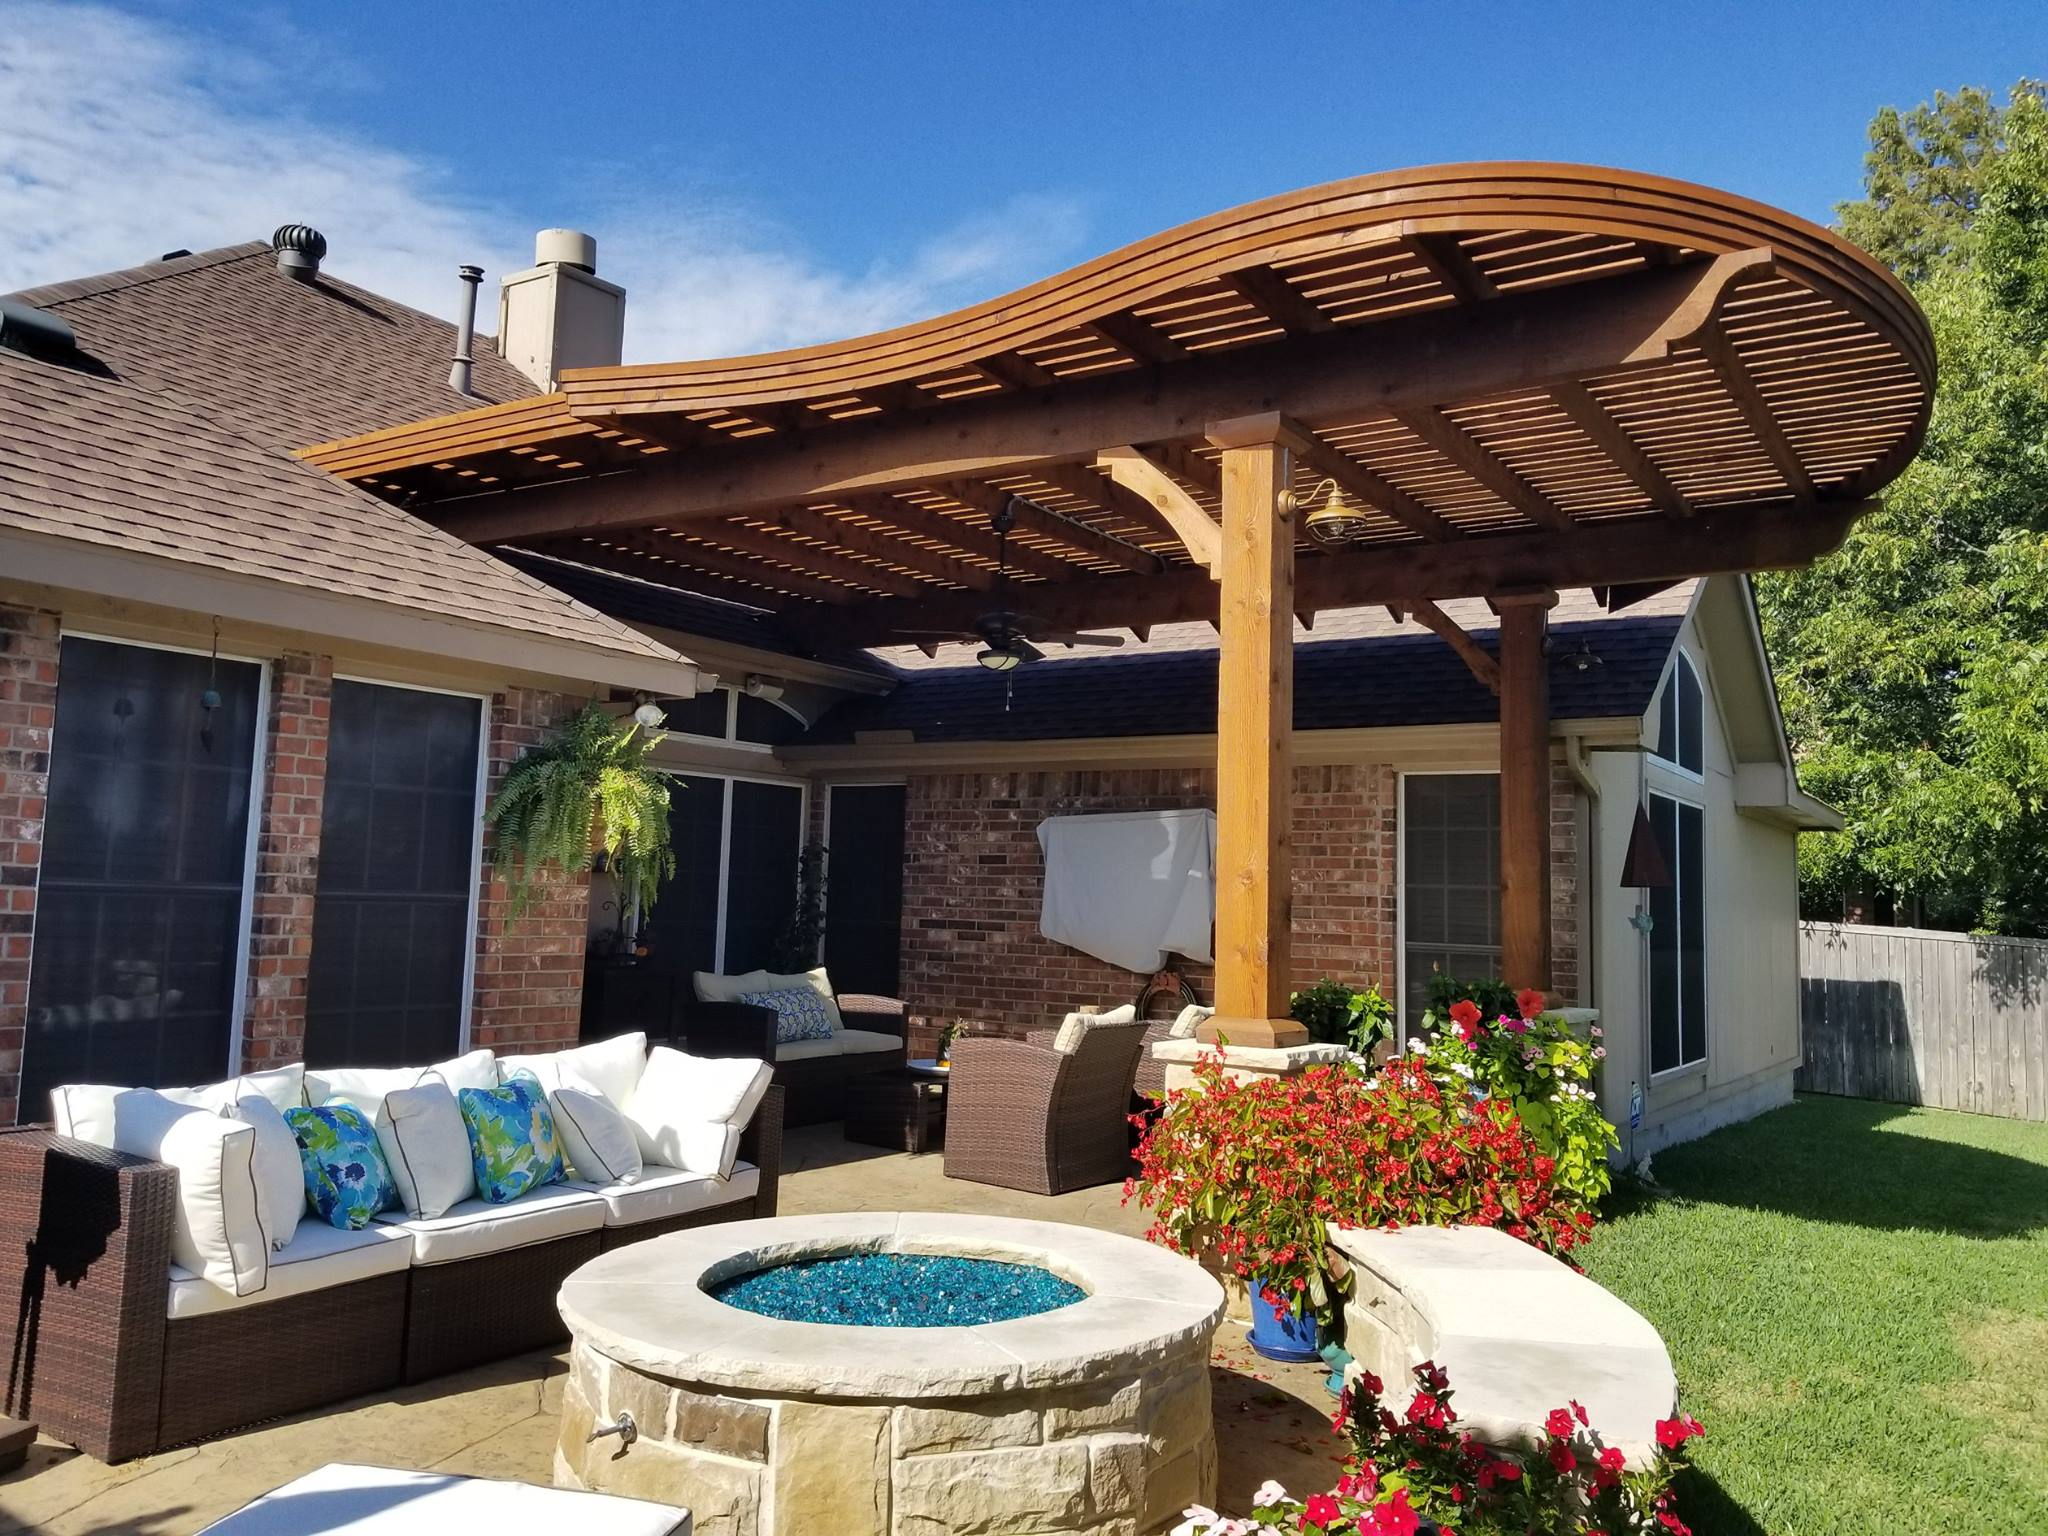 Sachse, Texas Patio Covers, Arbors & Outdoor Kitchens ... on Backyard Patio Cover Ideas  id=86054